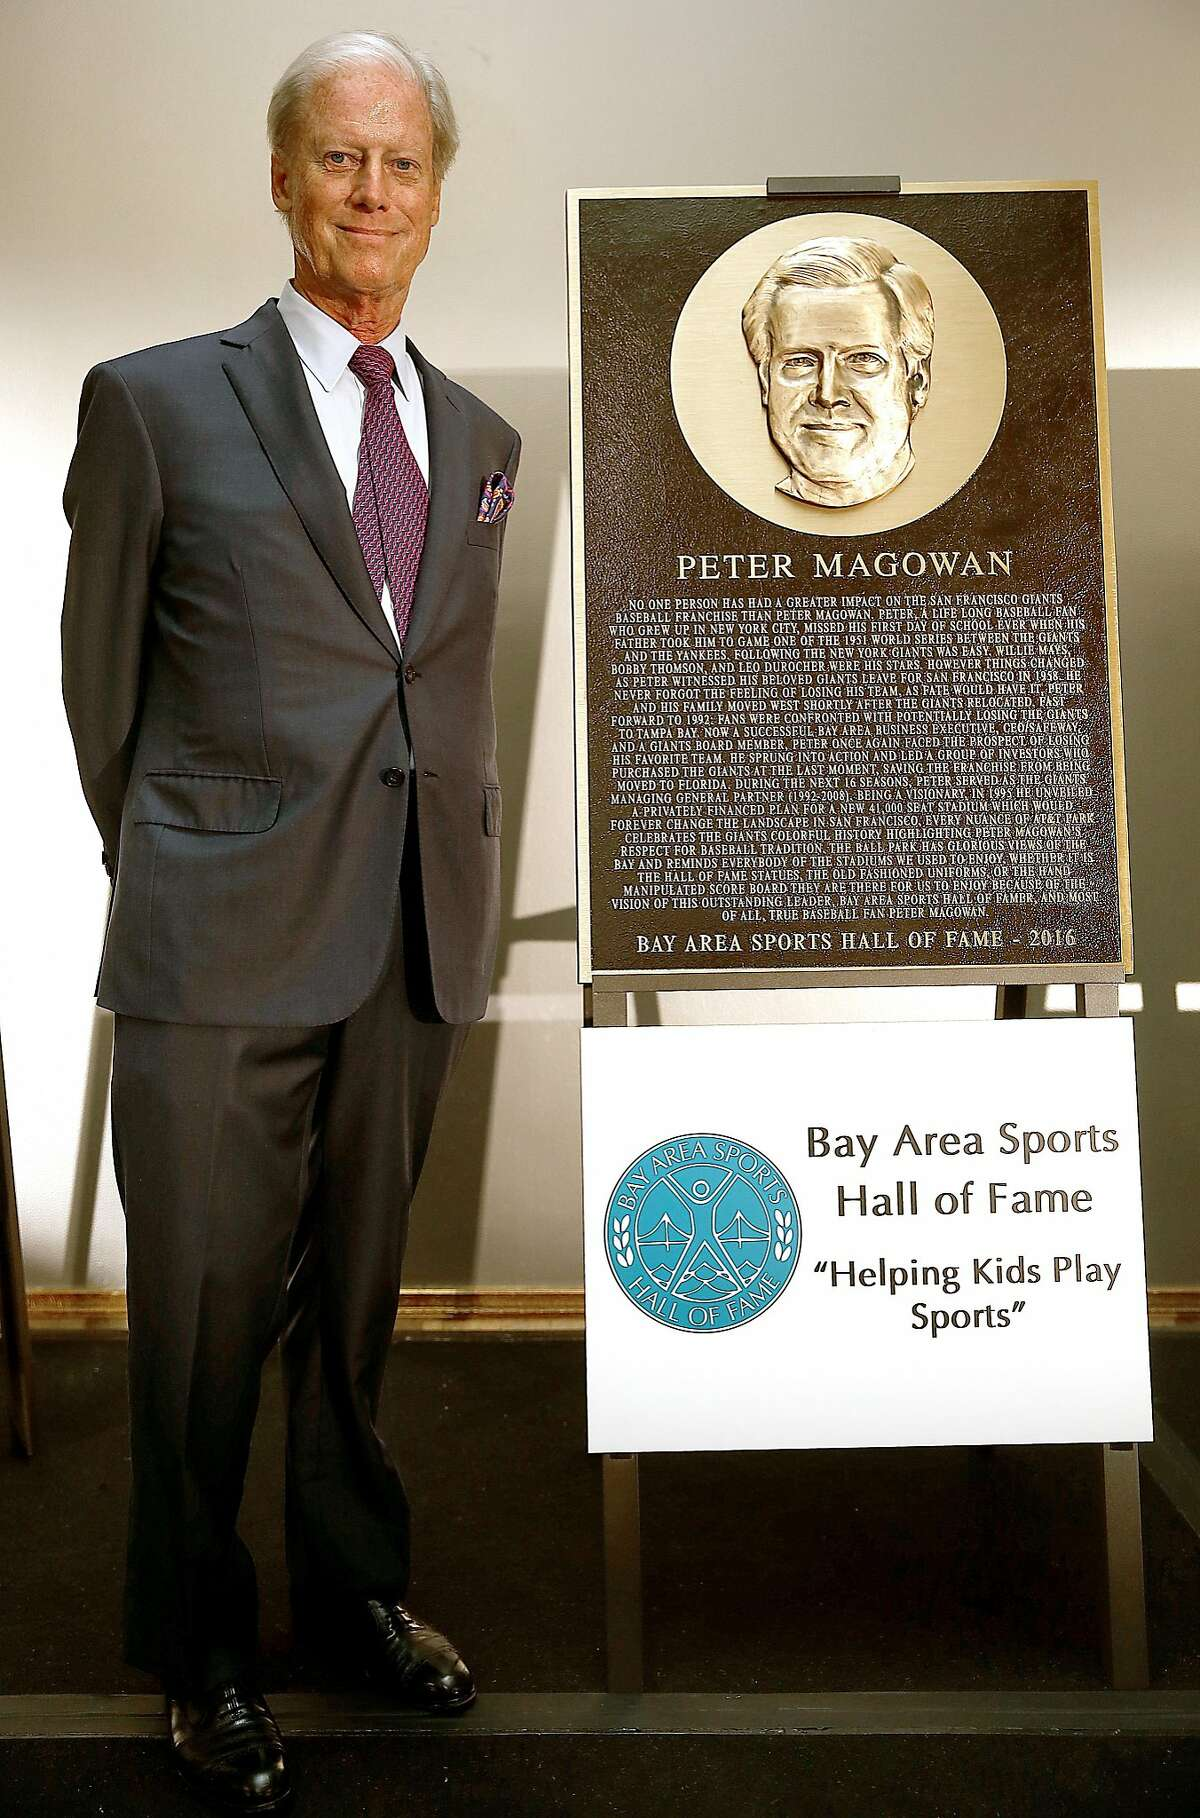 Former Giants owner Peter Magowan stands next to his bronze plaque at the St. Francis Hotel in San Francisco, California, on monday, may 16, 2016.